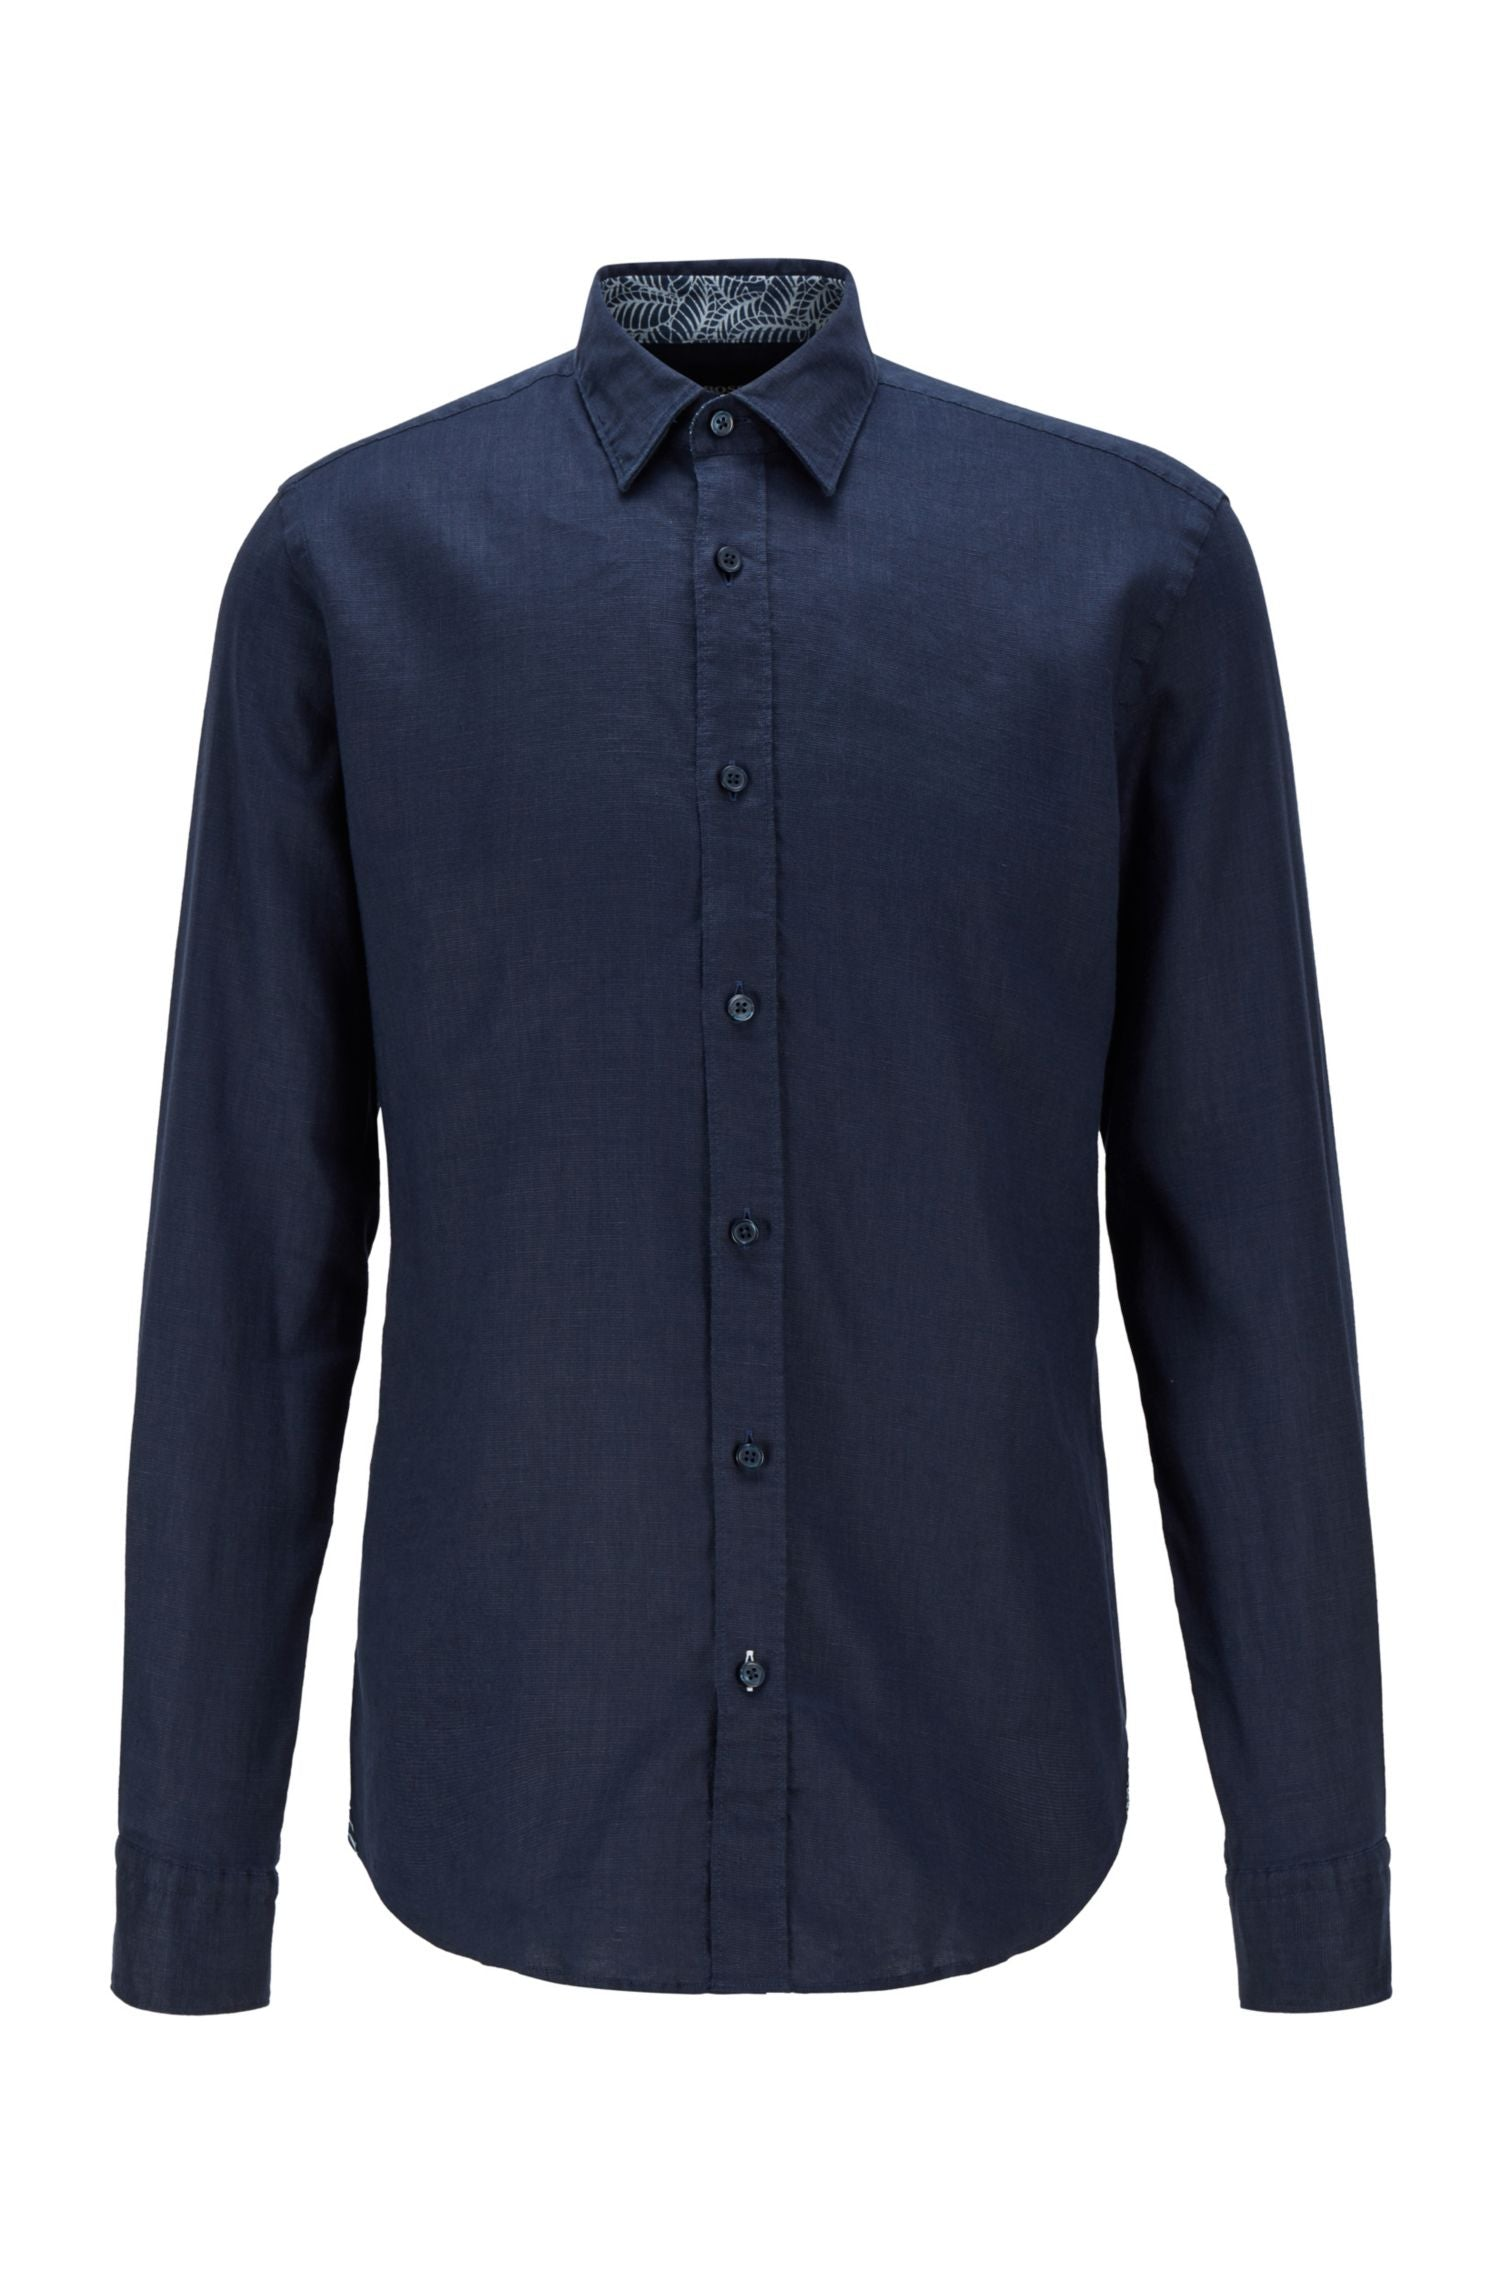 Hugo Boss - RONNI_53 Dark Blue Slim-Fit Shirt in Stretch Linen 50448896